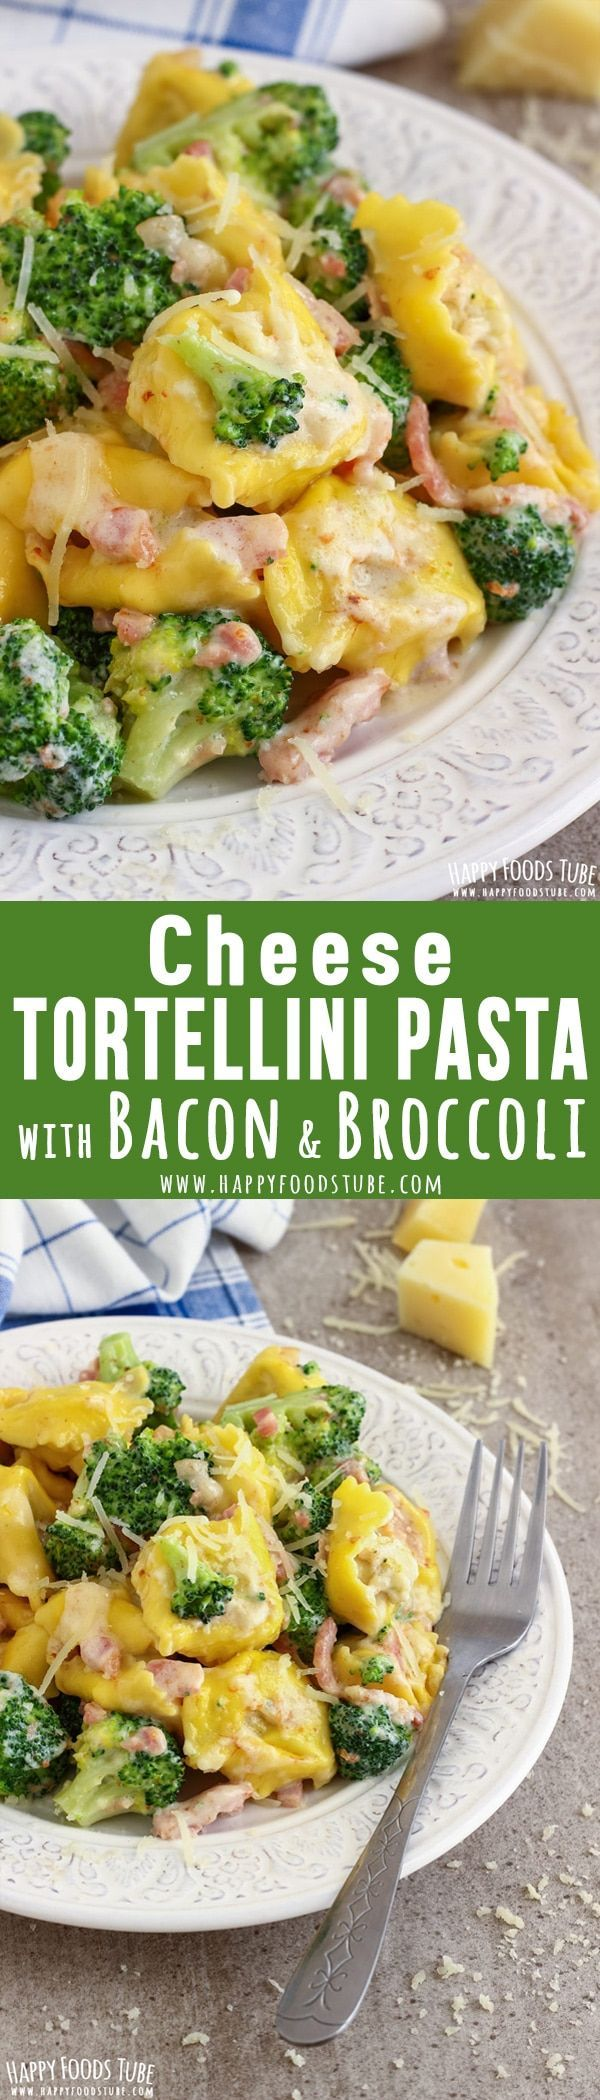 This cheese tortellini pasta with broccoli and bacon recipe is a quick weeknight dinner idea! All you need is 5-ingredients and 20-minutes. Easy to make Italian food. #tortellini #pasta #broccoli #bacon #recipe #italianfood #cooking #lunch #dinner #cheese (cheap pasta casserole)